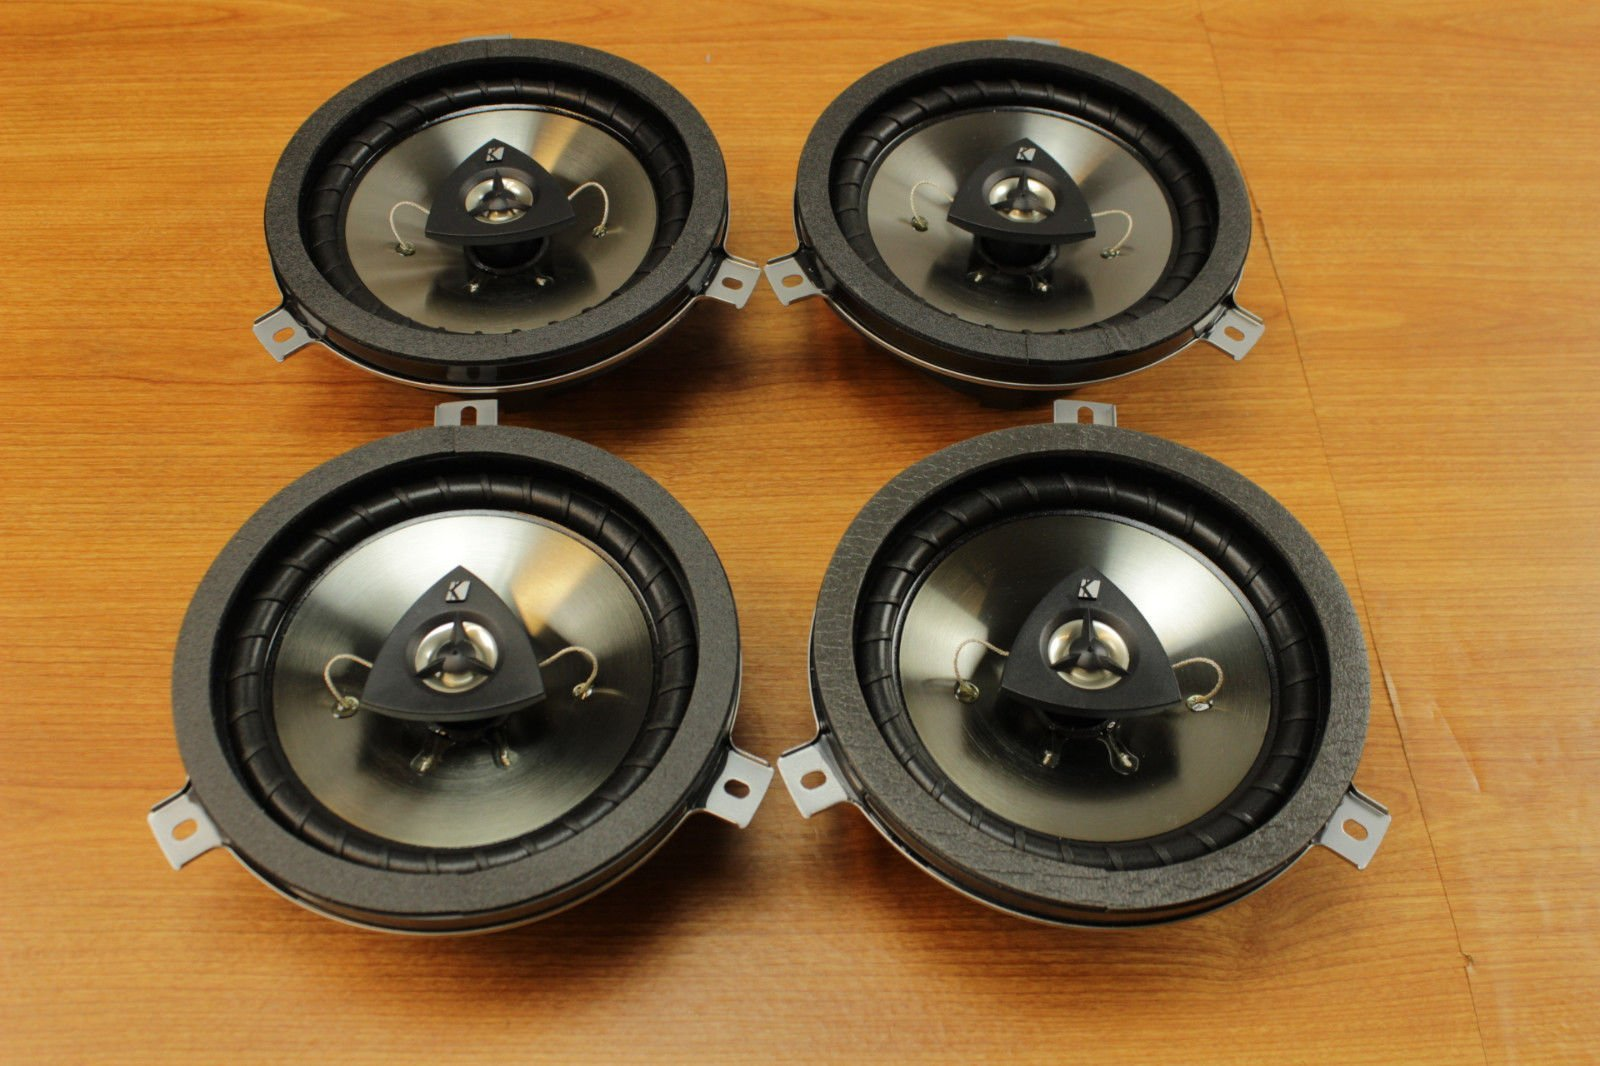 Chrysler Jeep Dodge 6.5inch Kicker Speaker Upgrade Set of 4 Mopar OEM by Mopar